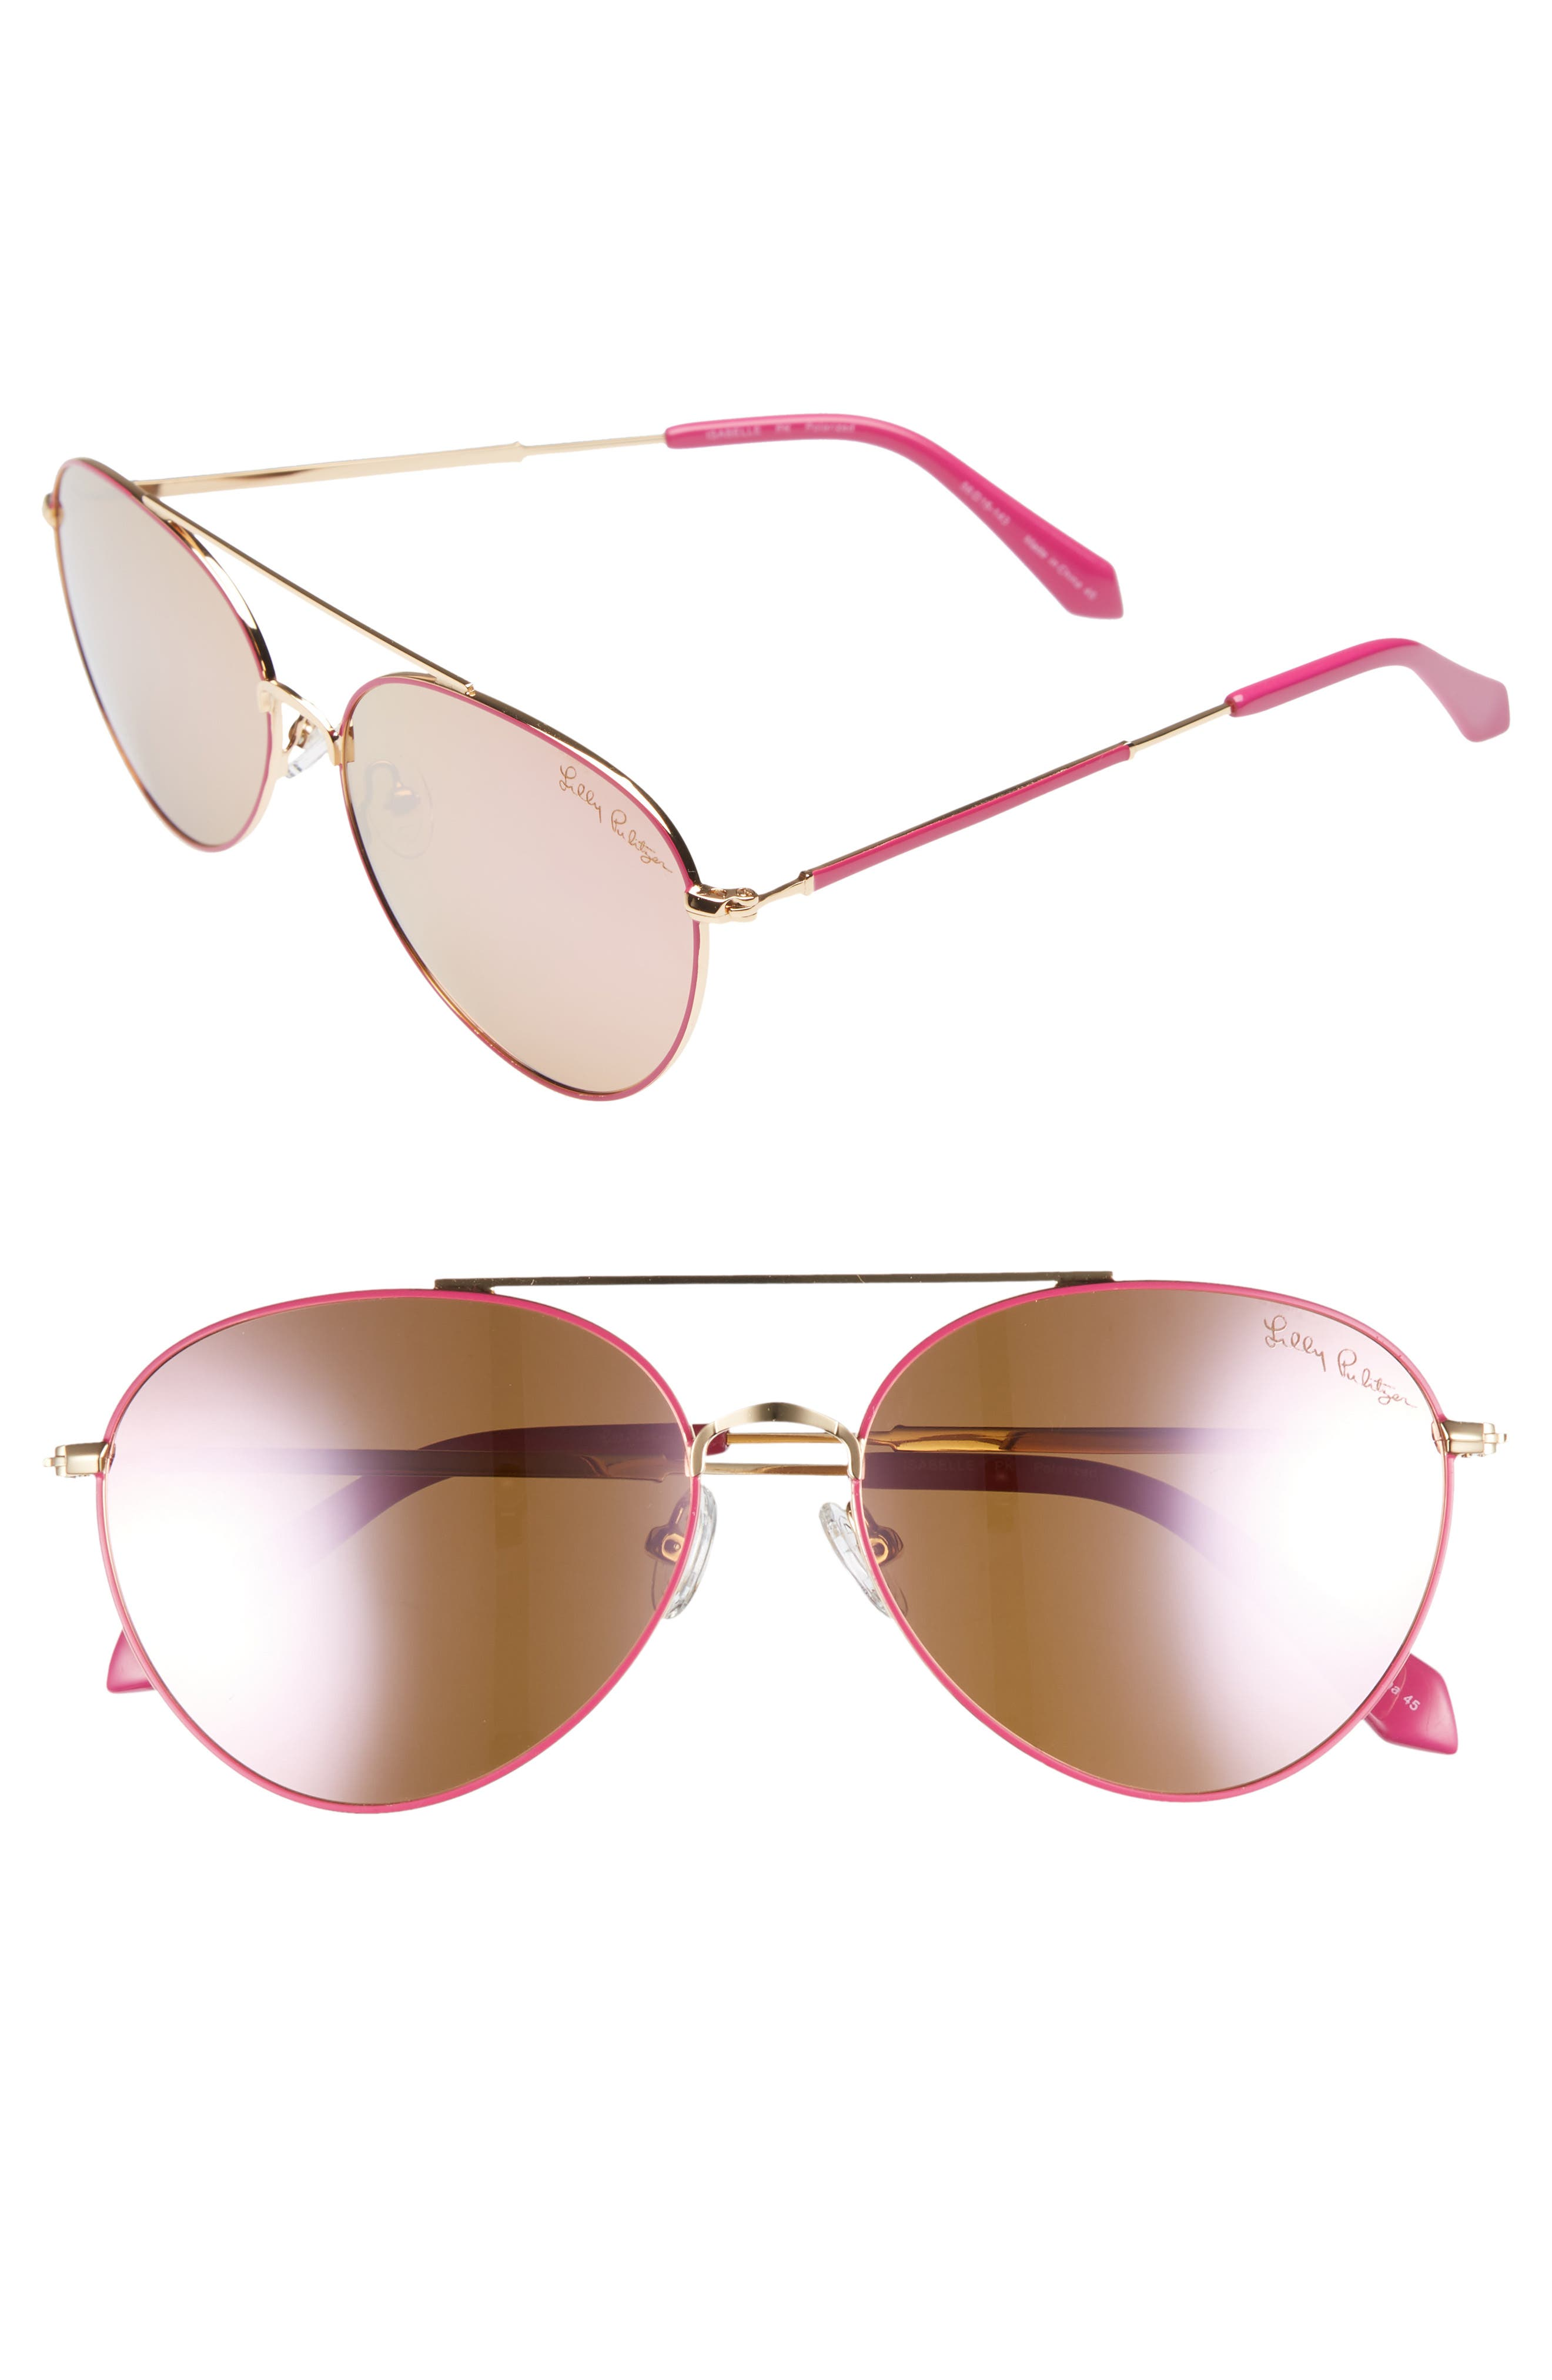 Isabelle 56mm Polarized Metal Aviator Sunglasses,                             Main thumbnail 1, color,                             PINK/ PINK